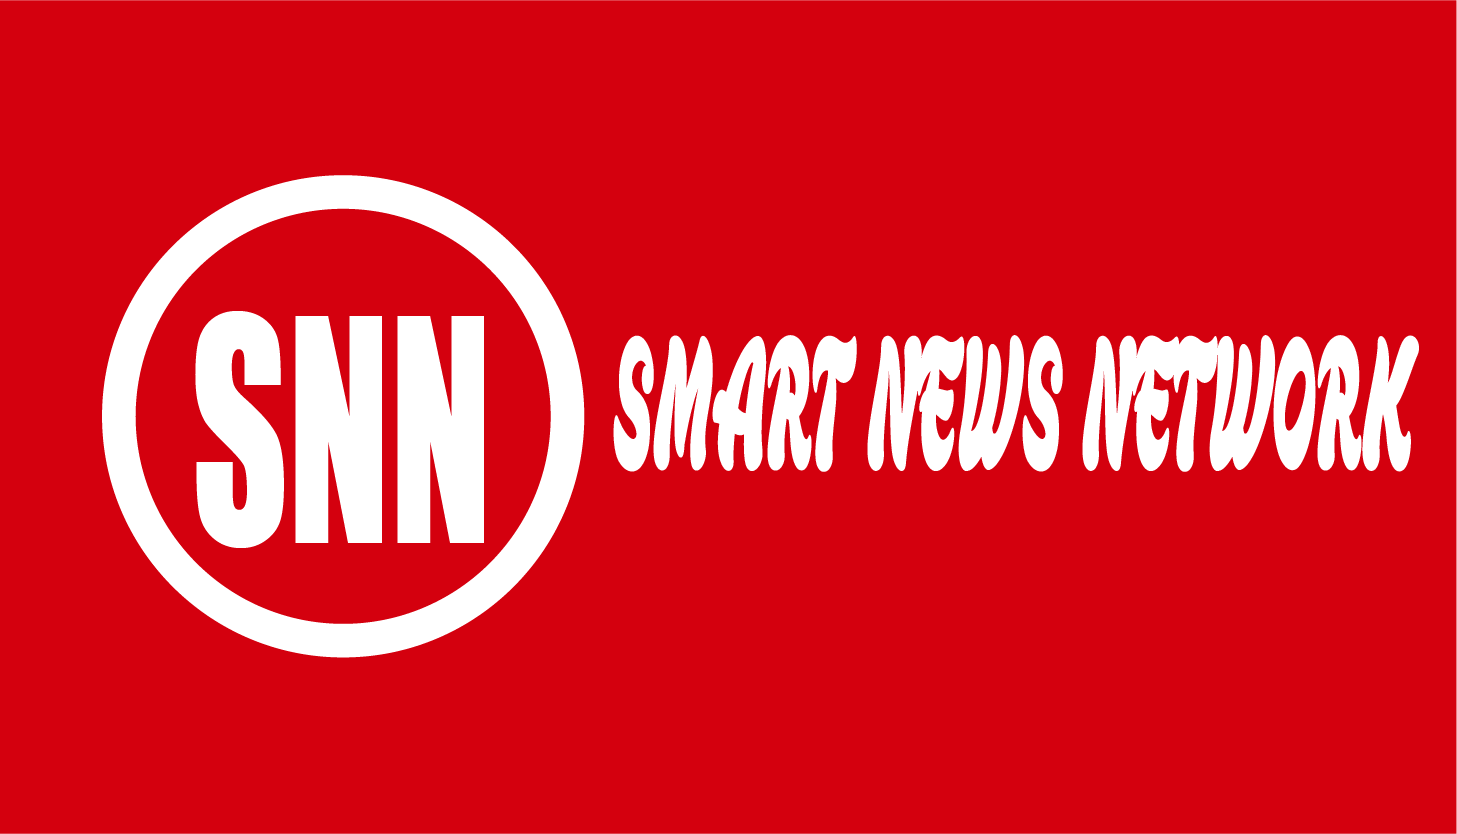 Smartnews network log